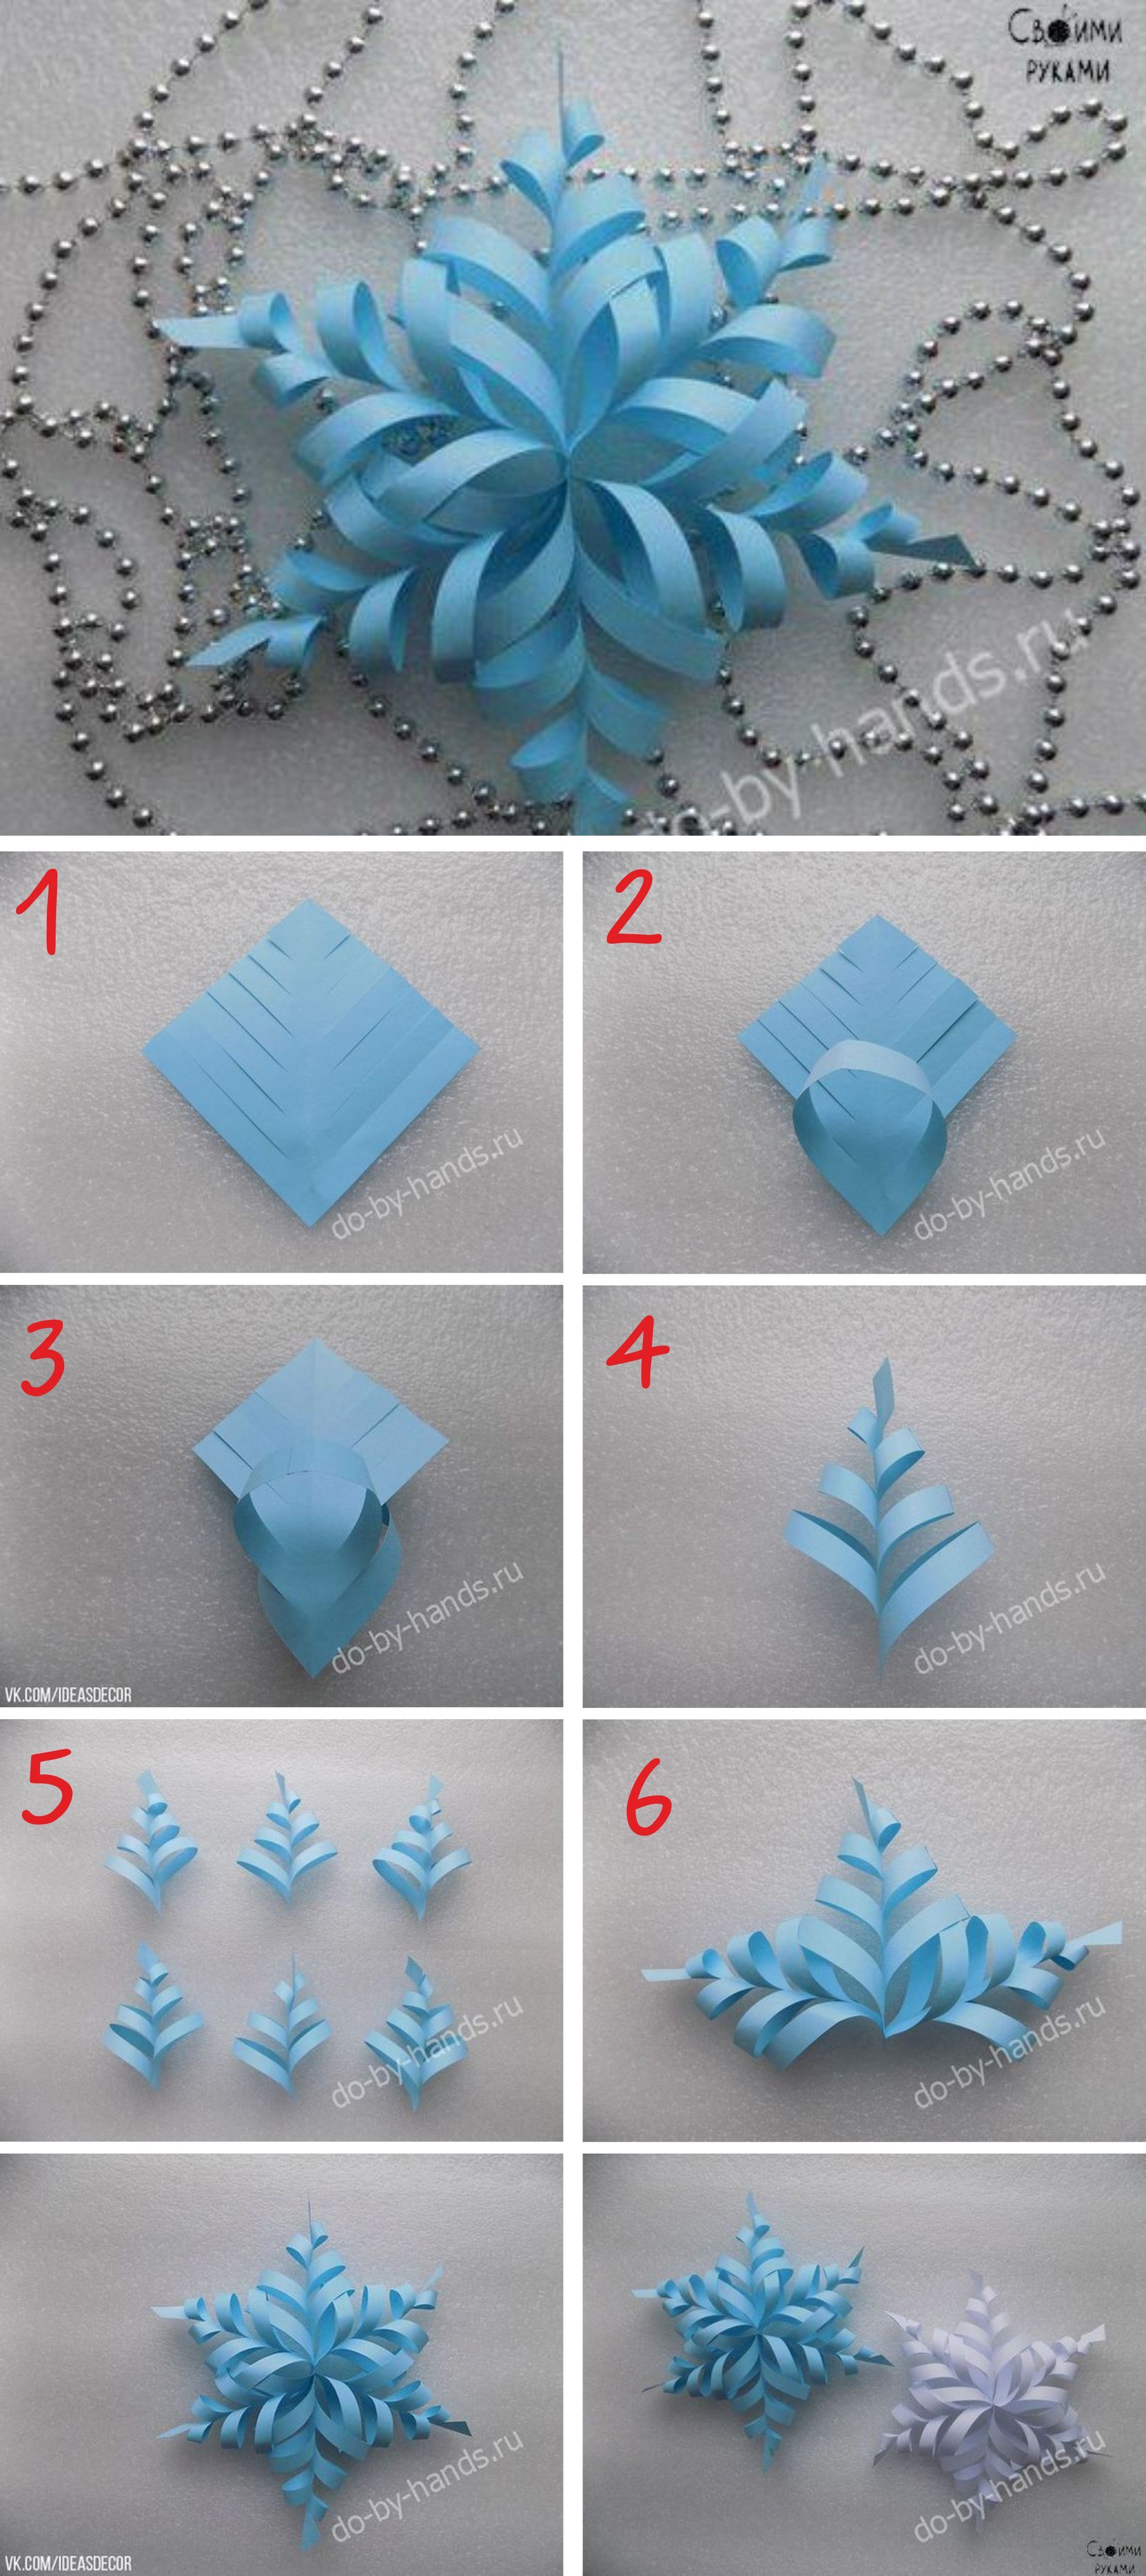 27 Brilliant of Origami Diy Decoration